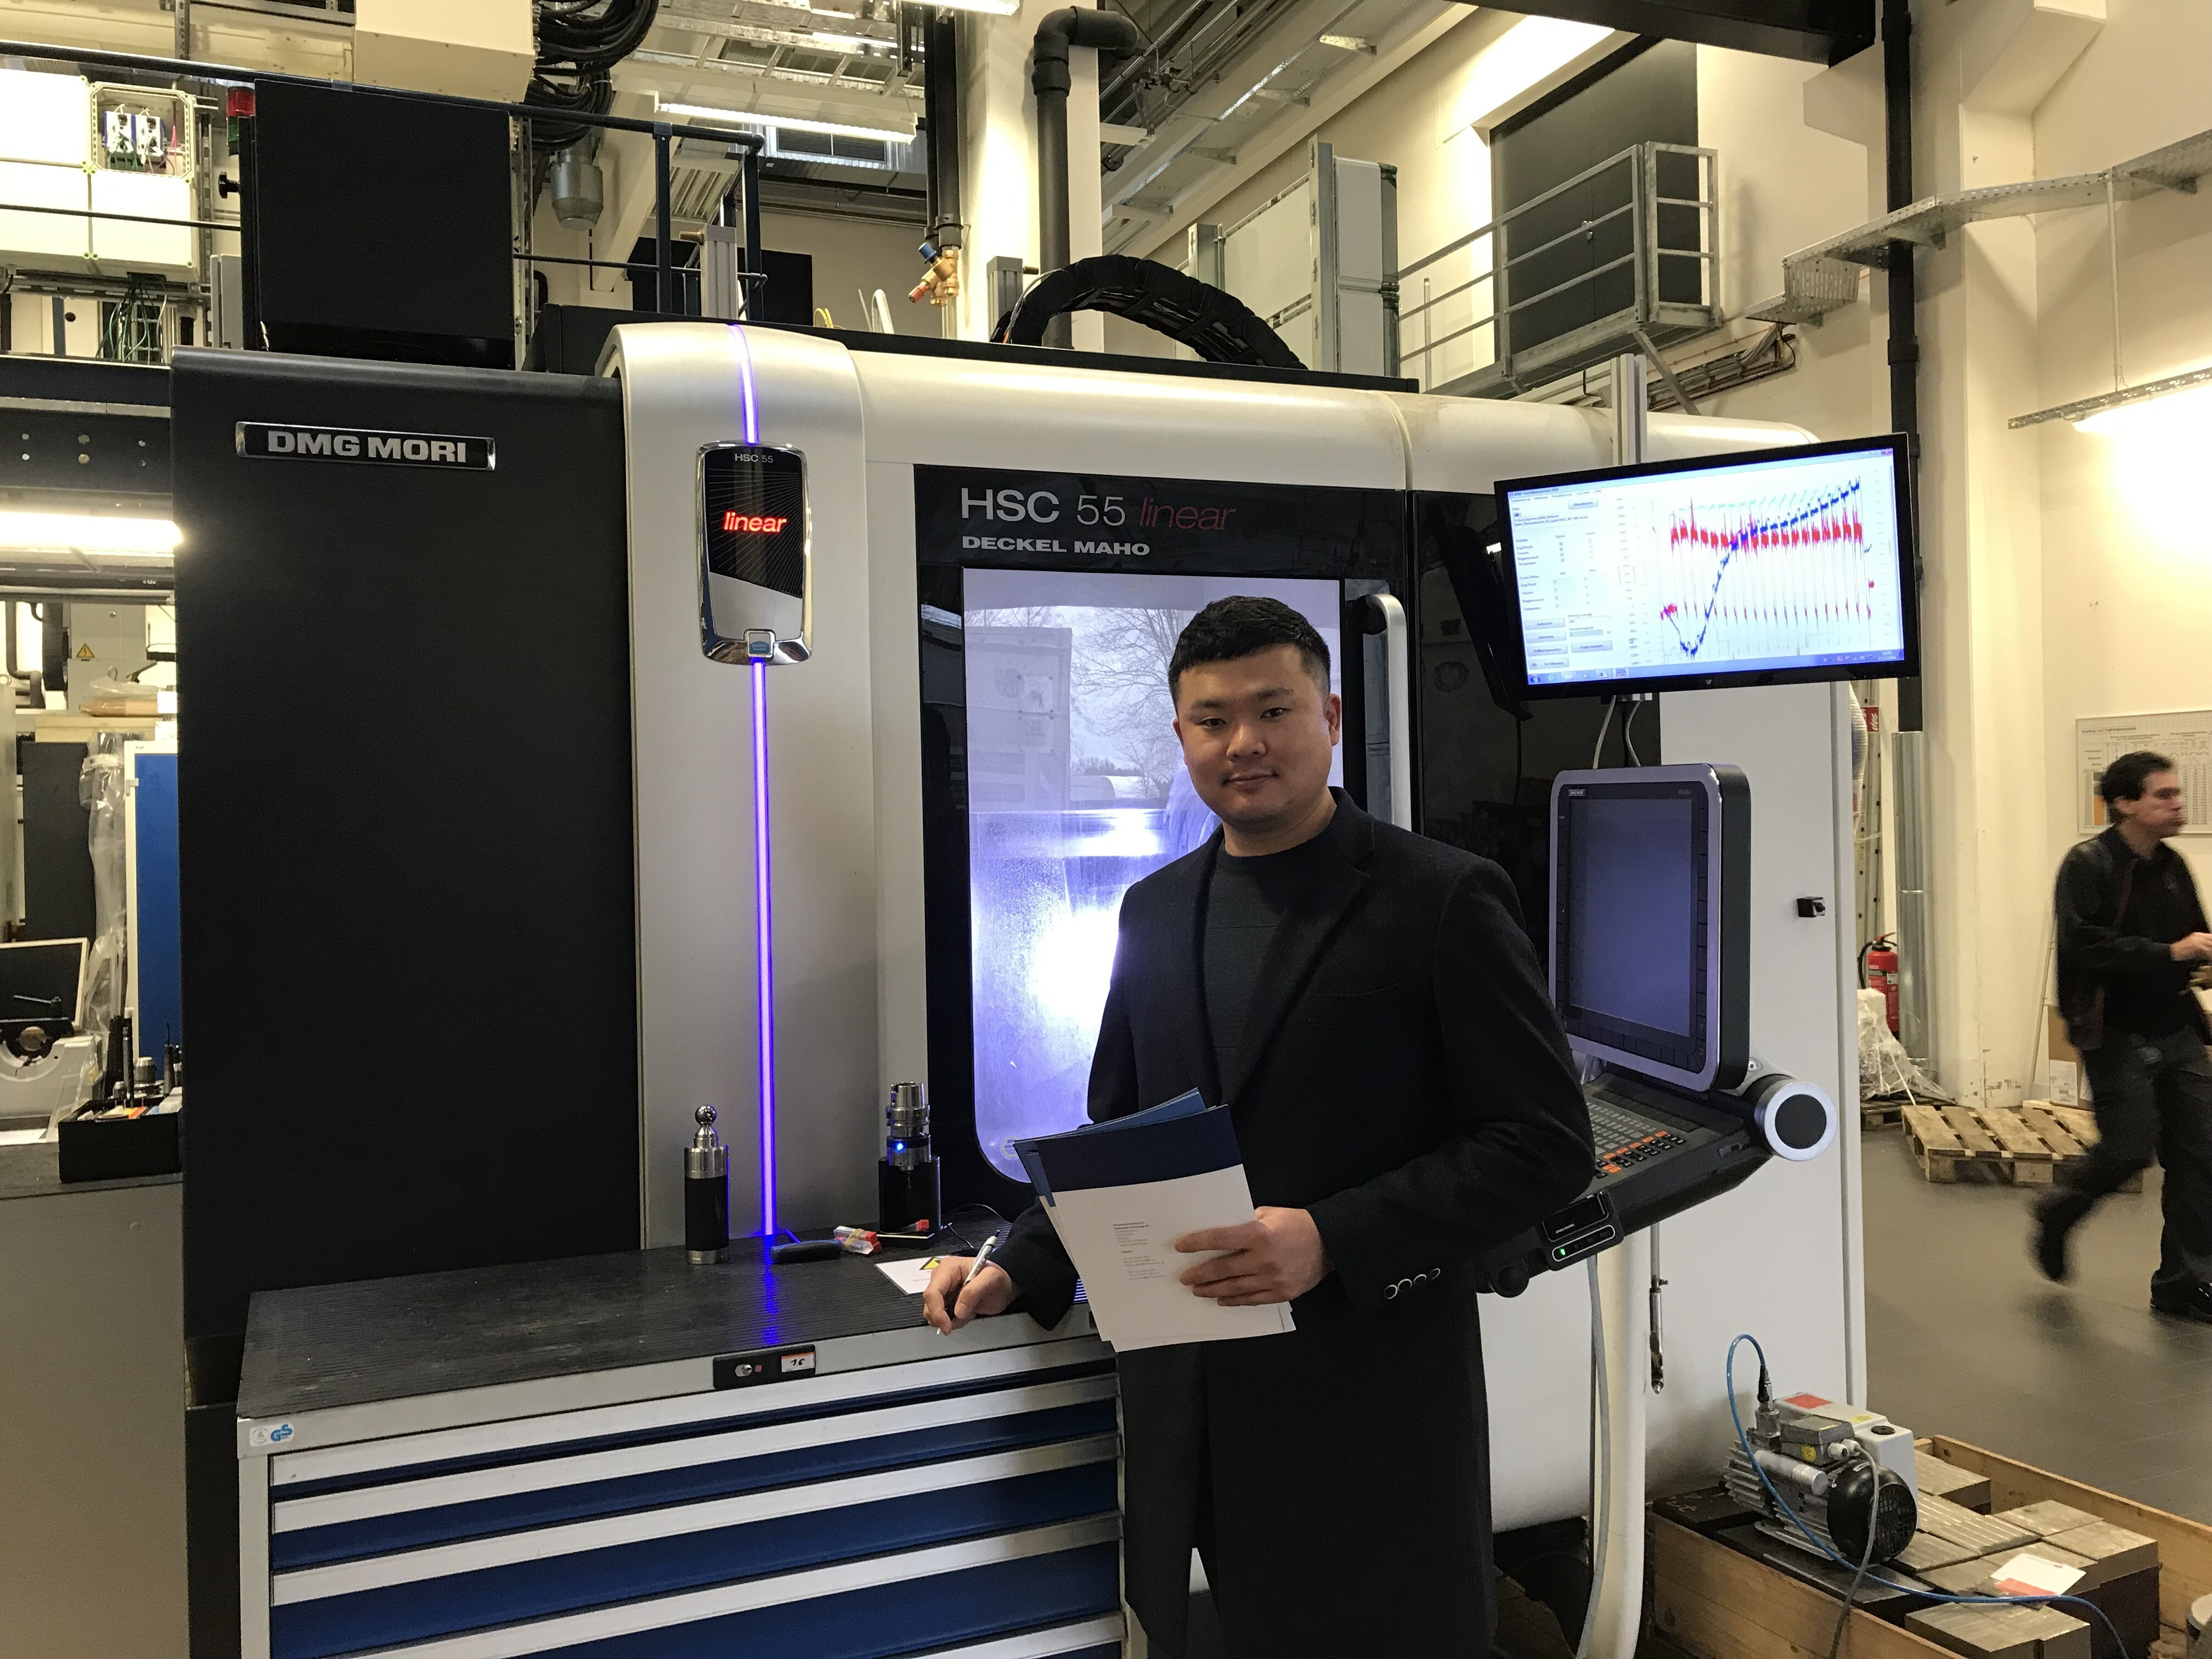 Researcher in front of machine tool